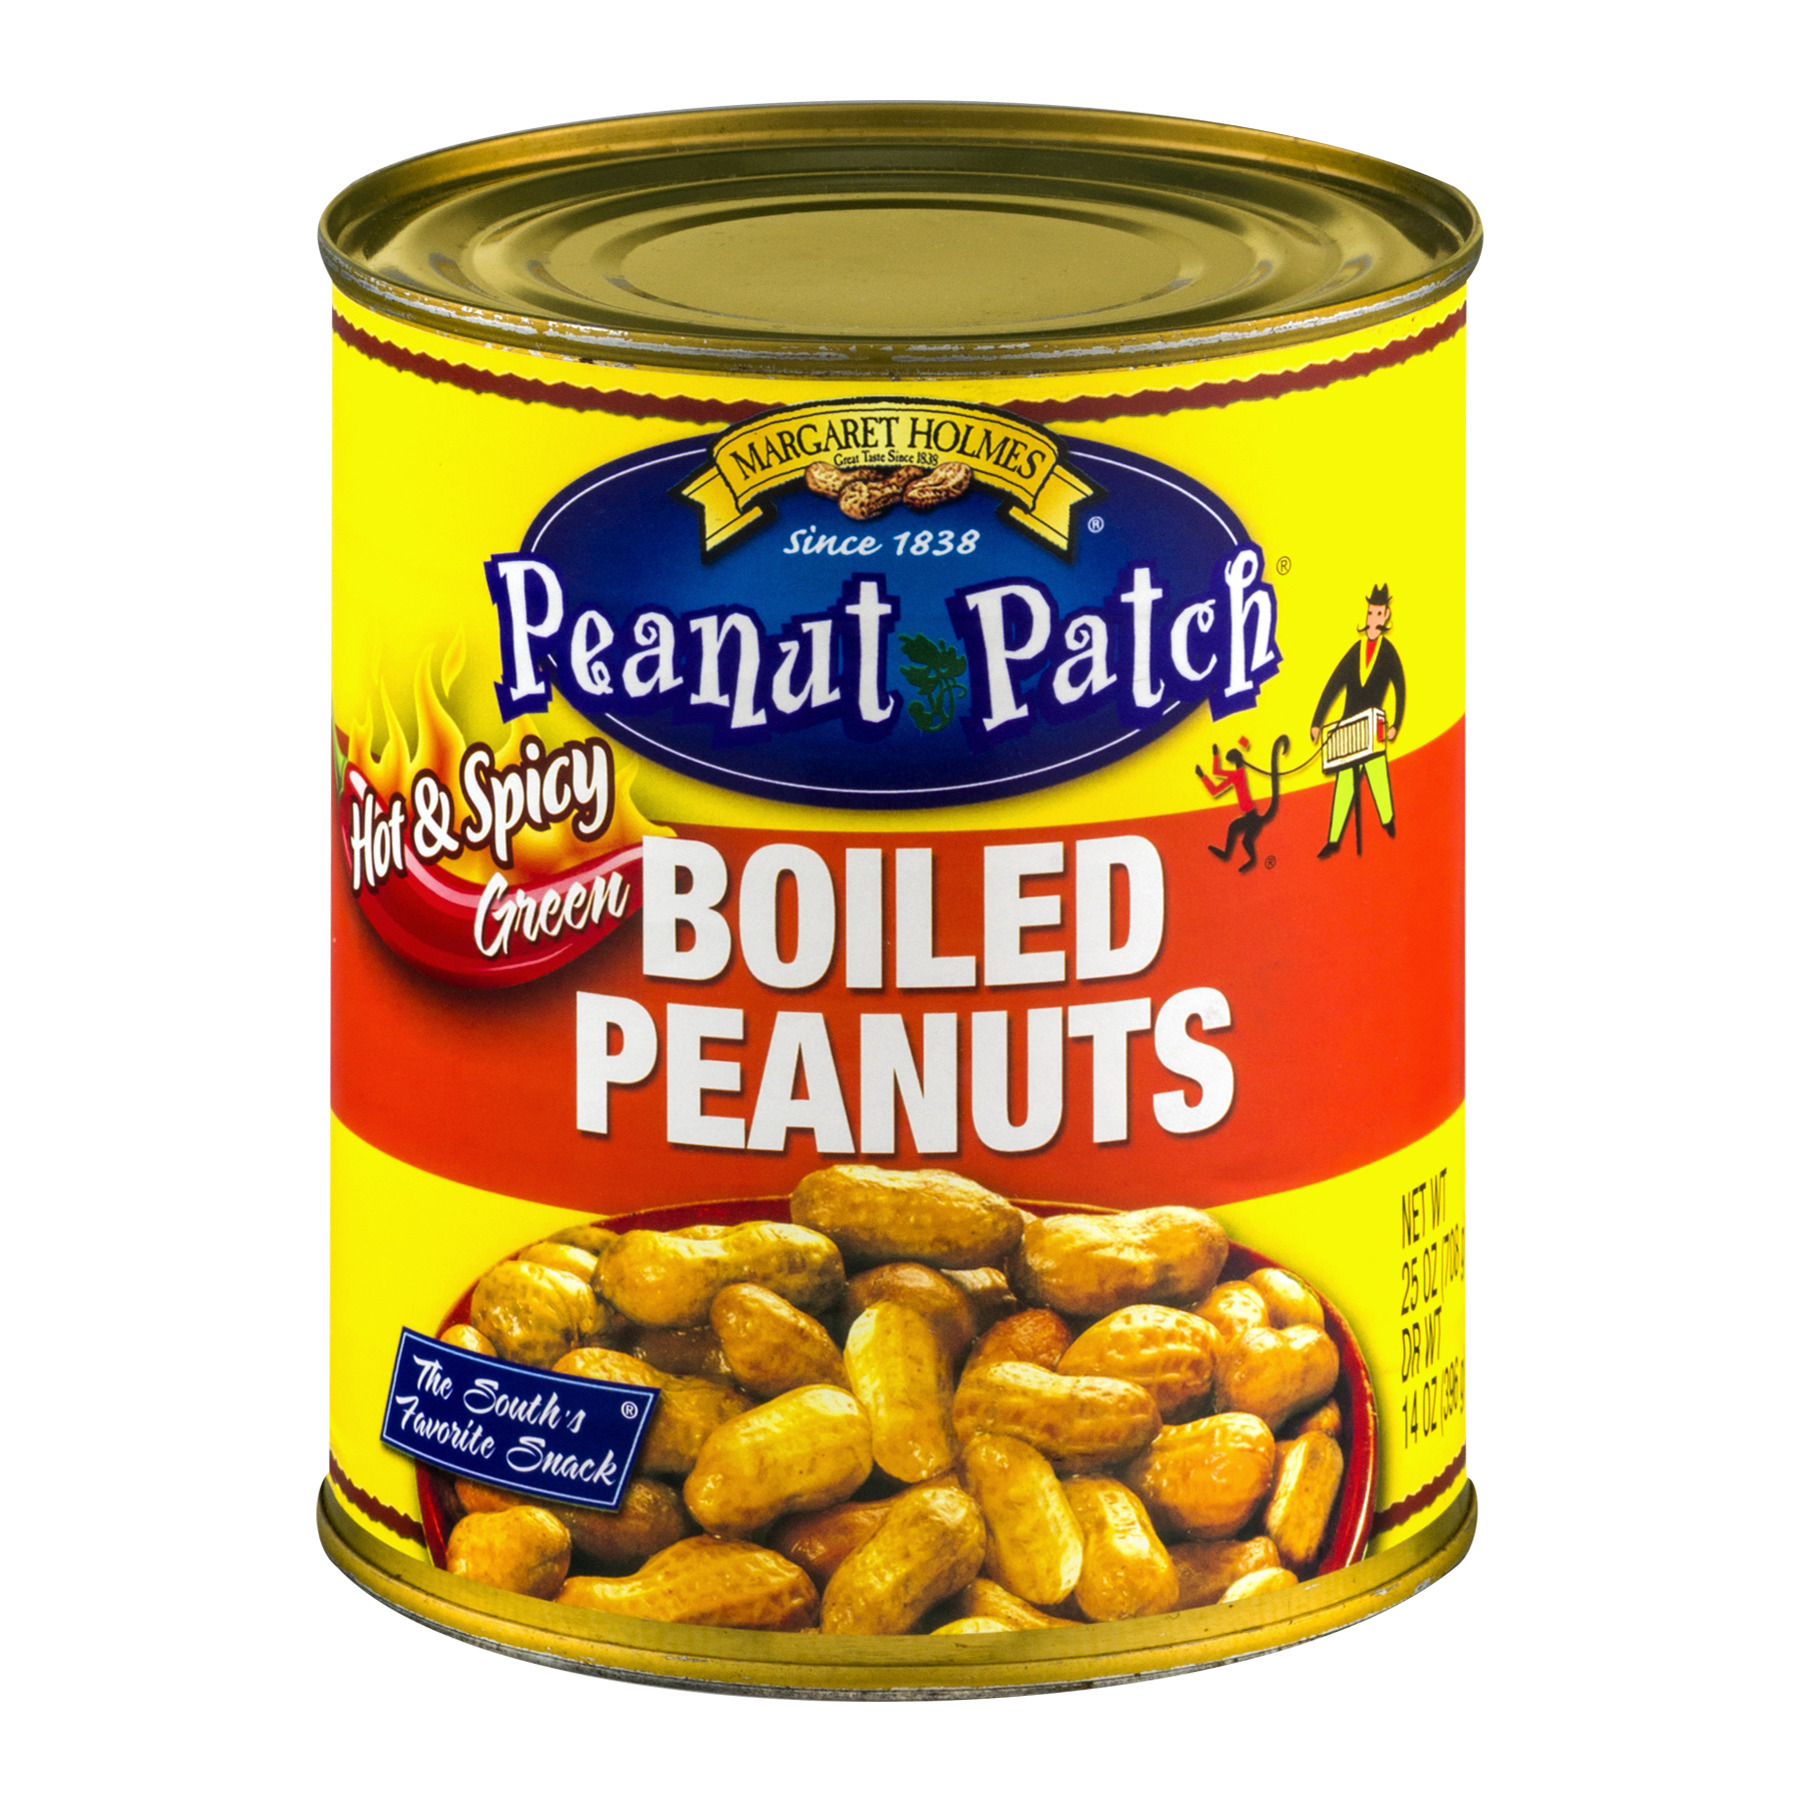 (6 Pack) Peanut Patch Hot & Spicy Green Boiled Peanuts, 25 oz